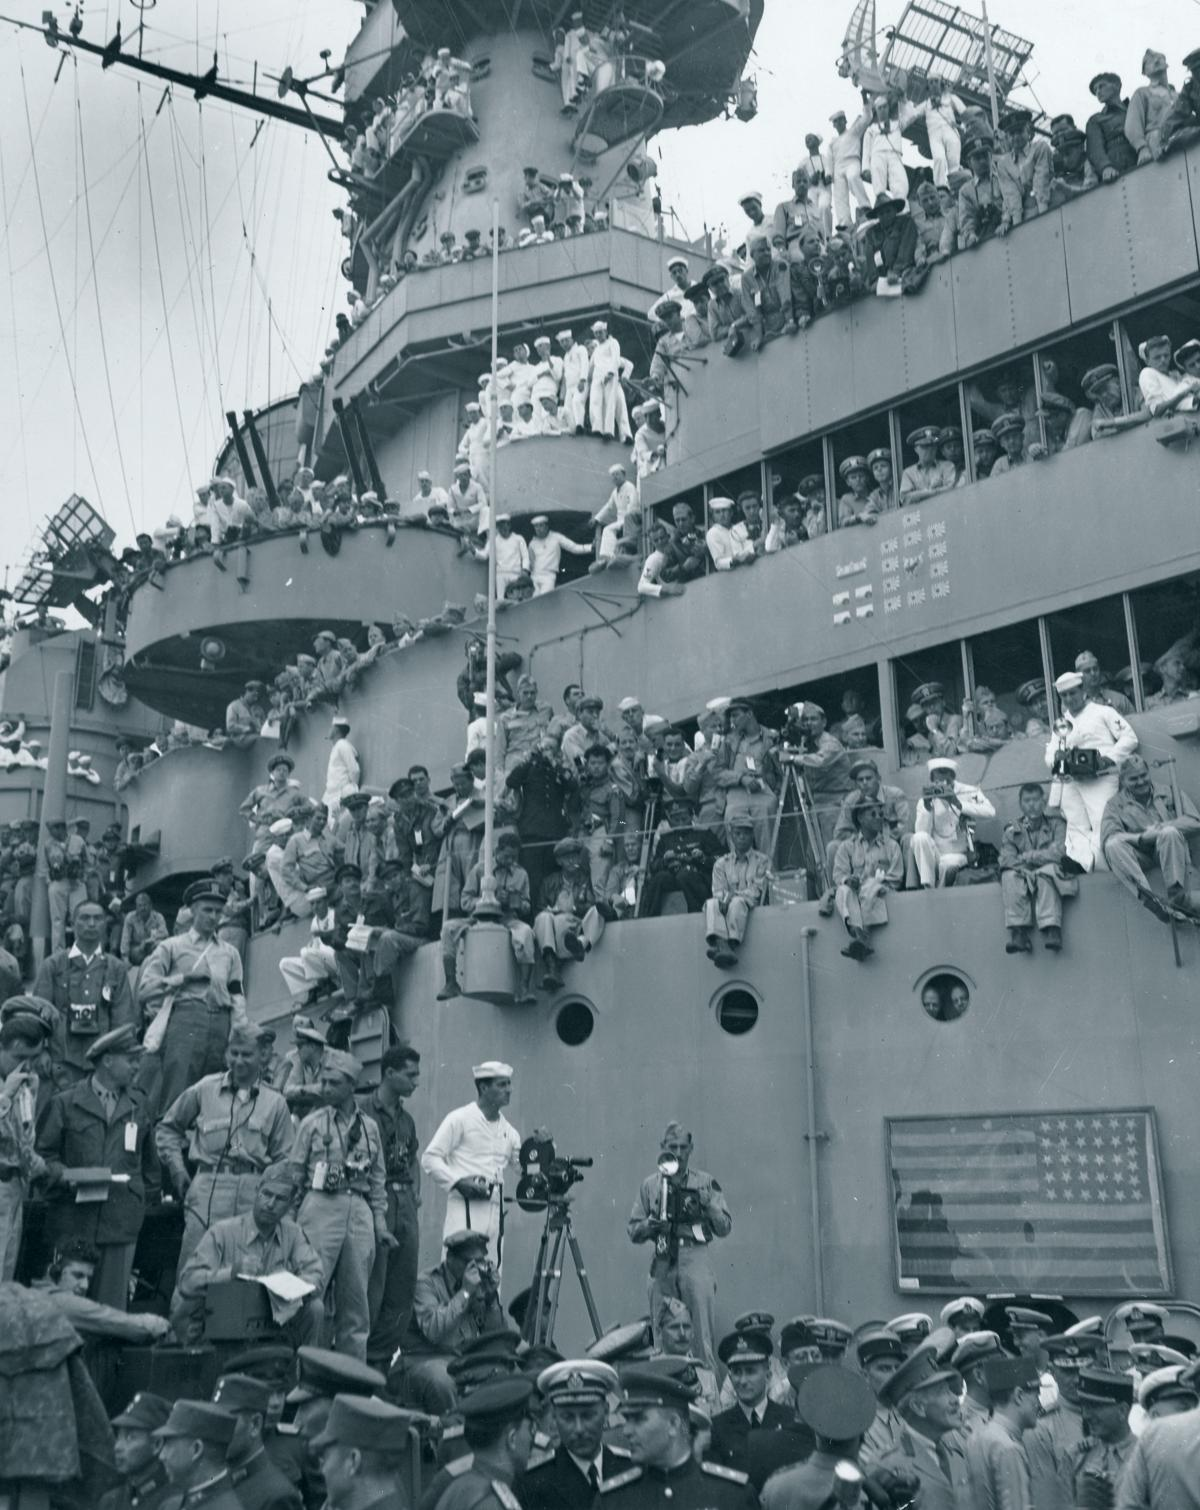 Front row seat to history: Sailors crowd the decks of the USS Missouri in Tokyo Bay to witness the formal Japanese surrender proceedings on 2 September 1945.